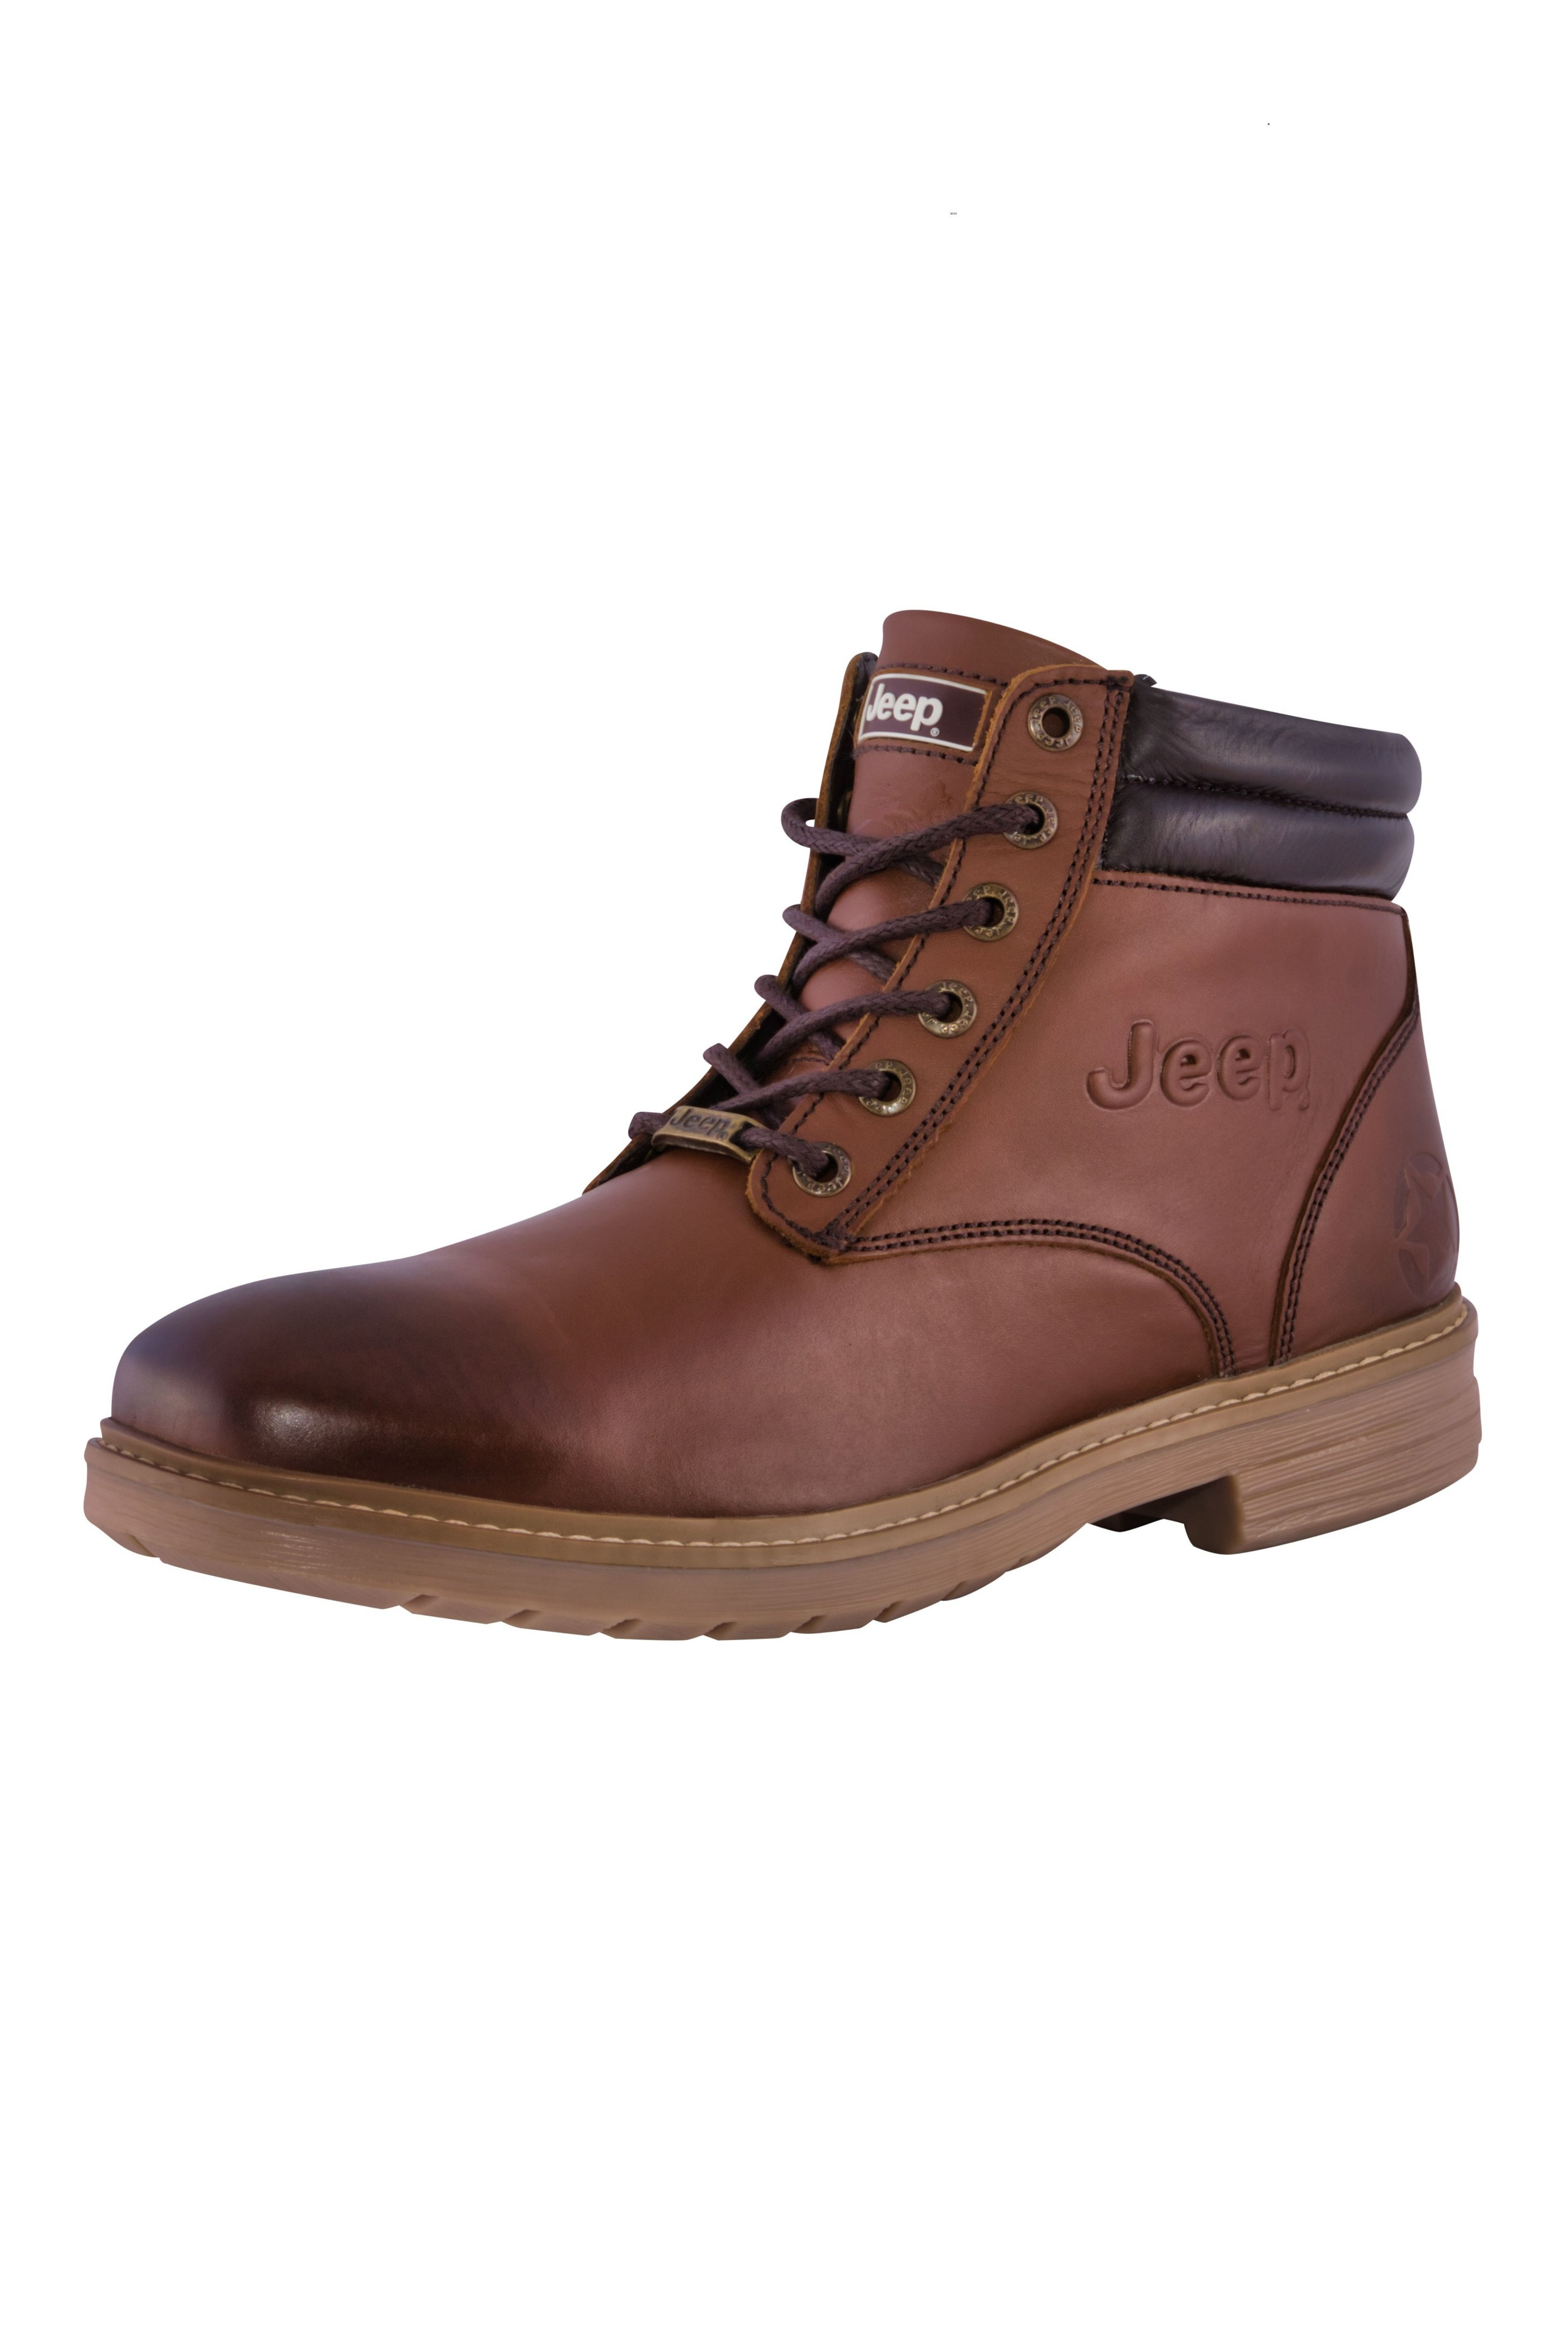 Jeep Mens Hiking Boot Ankle High Leather Outdoor Camping Work Shoes